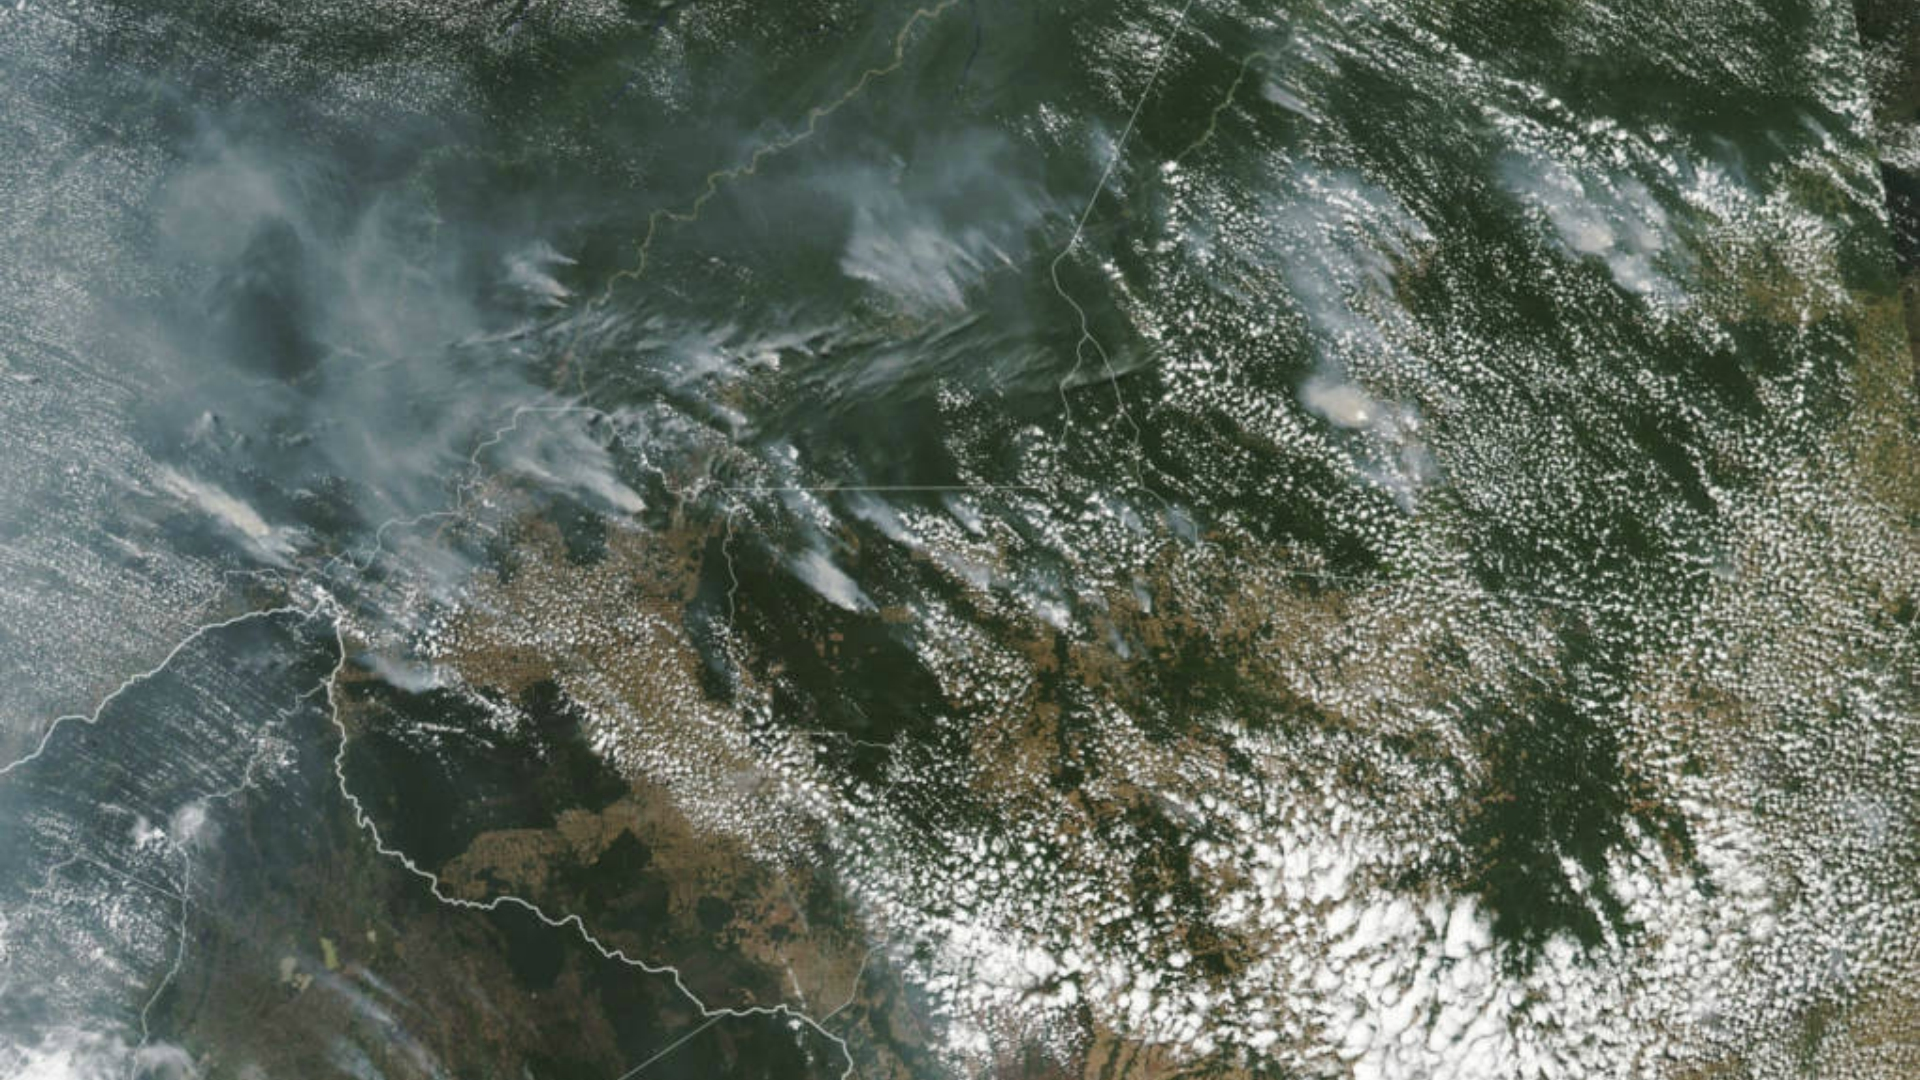 'Earth's Lungs' on Fire as Amazon Burns